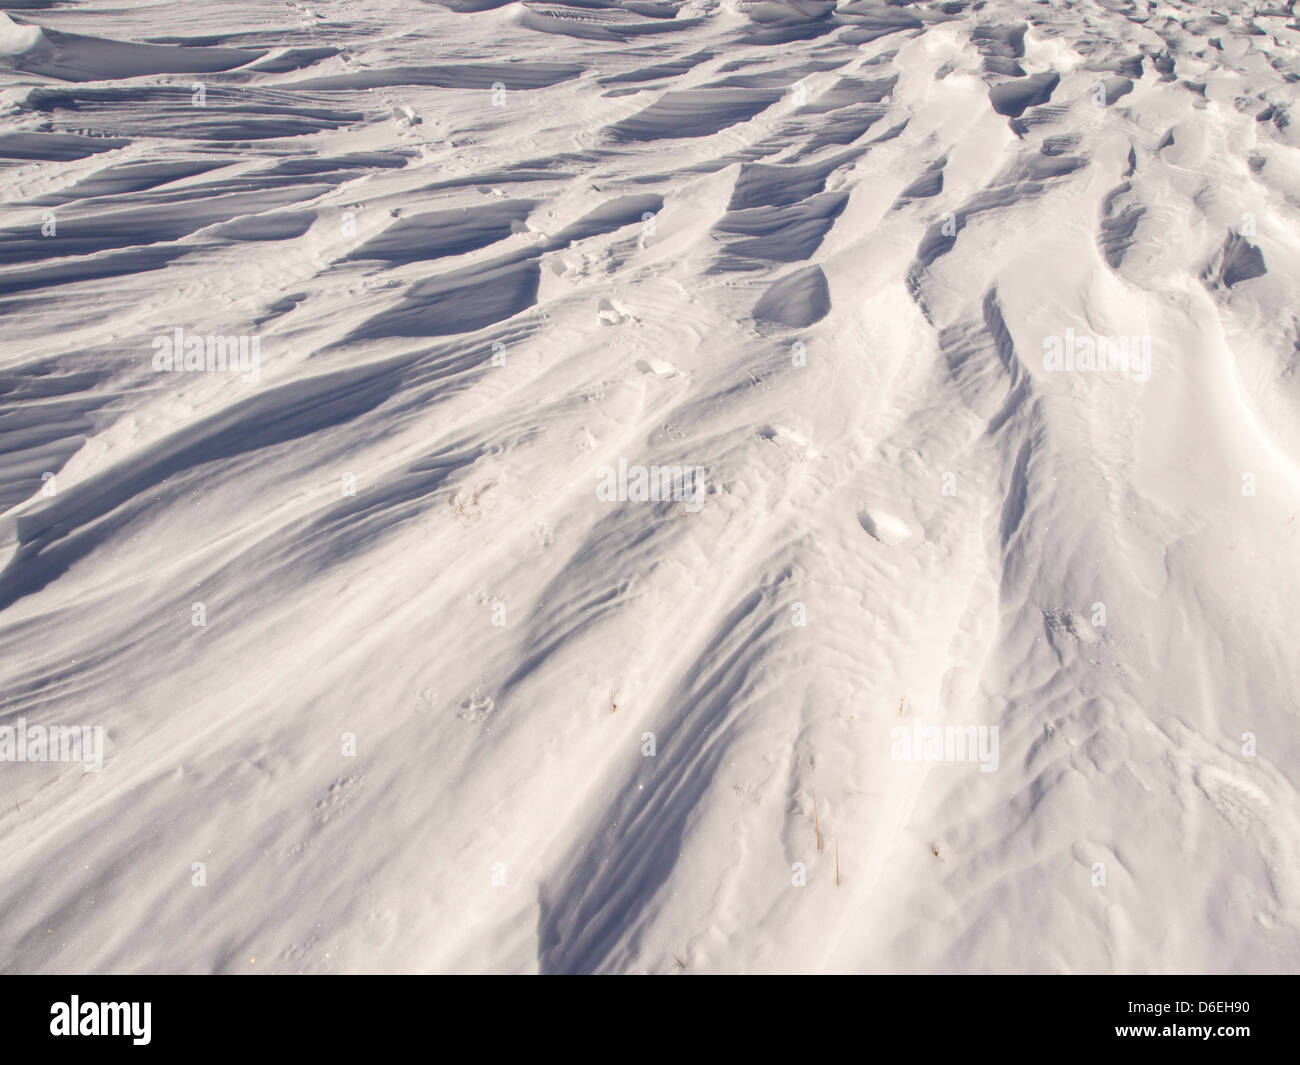 Sastrugi caused by wind scour on snow, Lake District, UK. - Stock Image